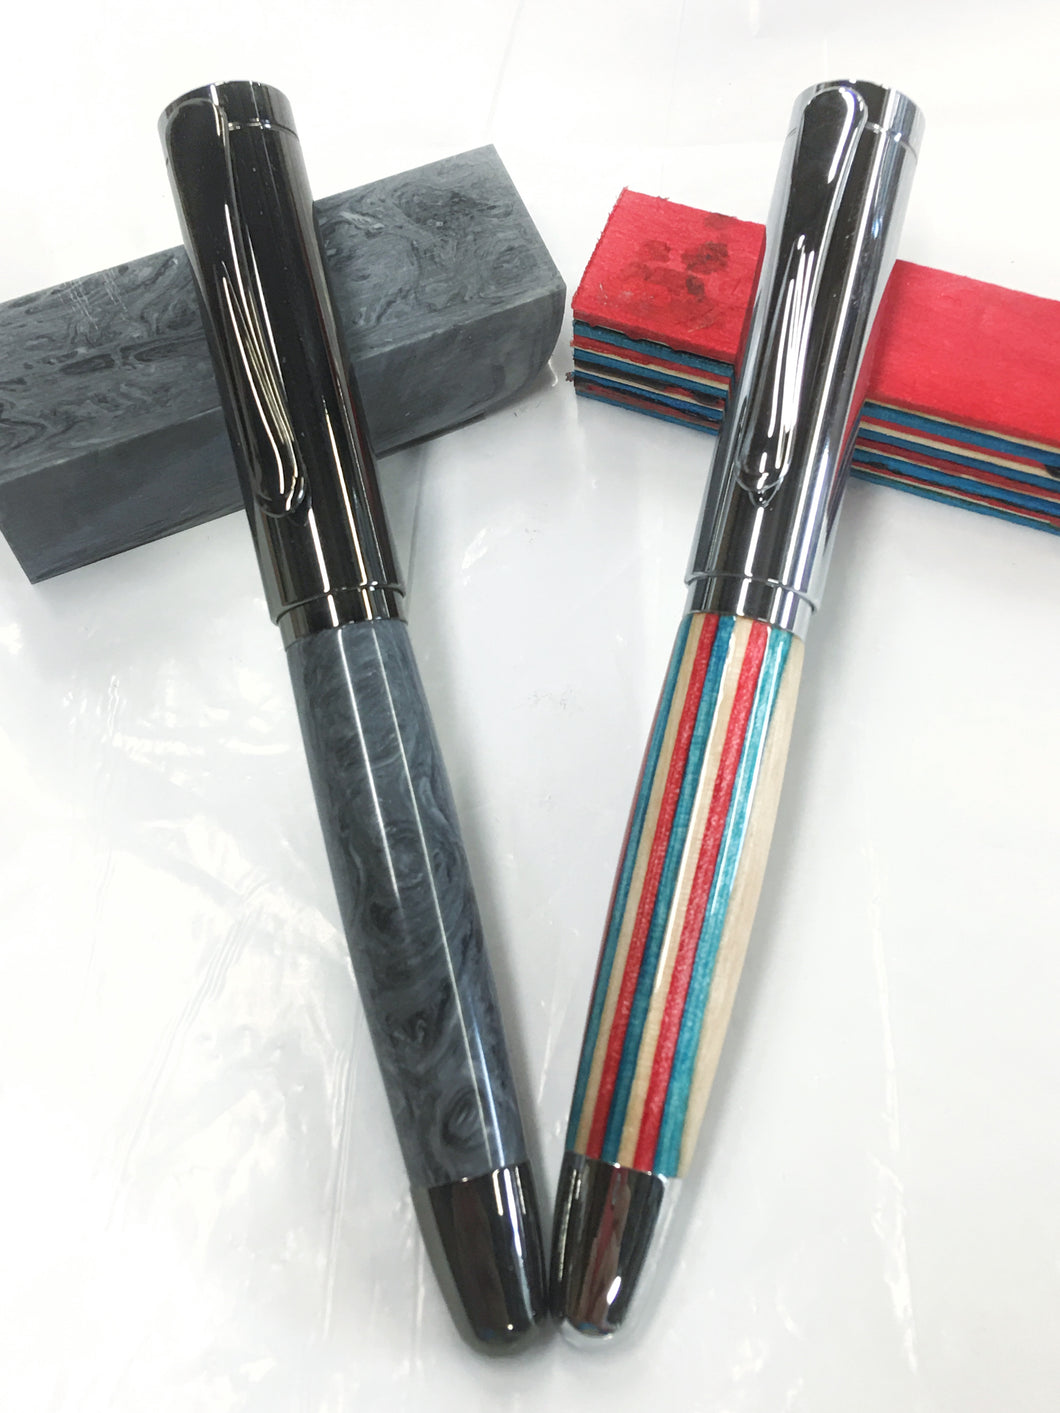 Dennis Rollerball / Chrome - Wood / Red,White and blue colored craft sticks